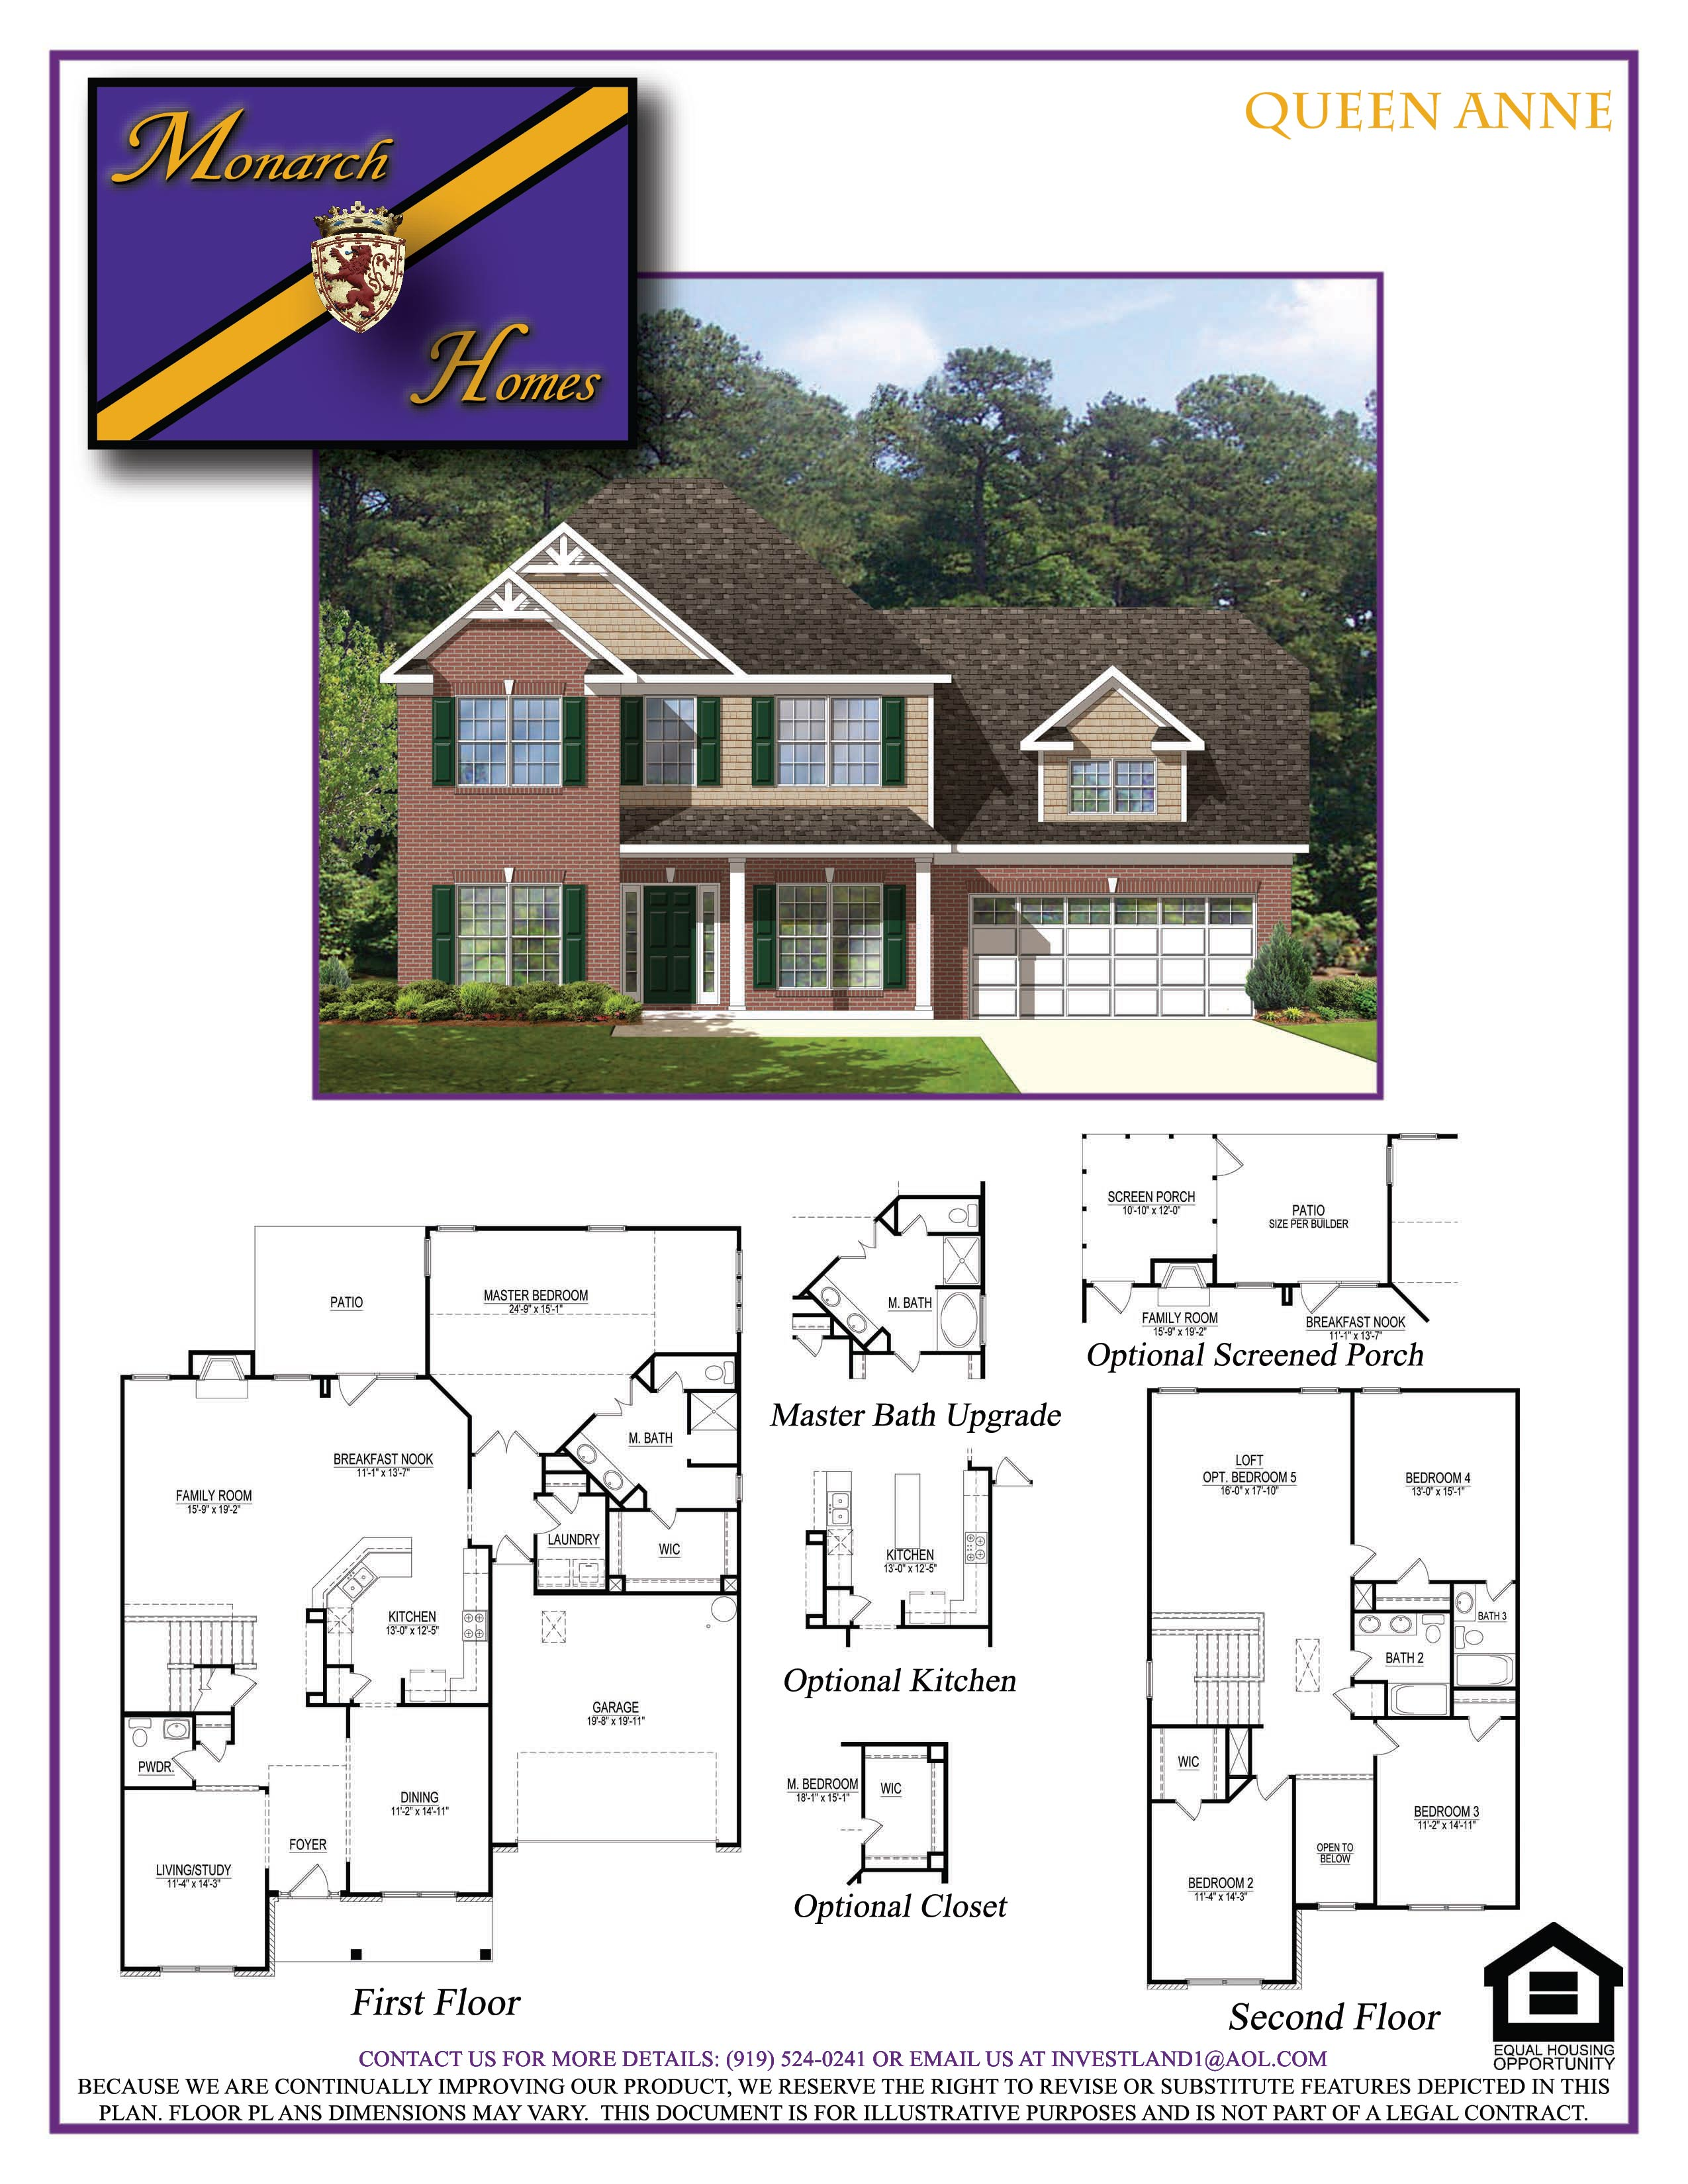 Queen anne monarch homes of north carolina for Queen anne floor plans